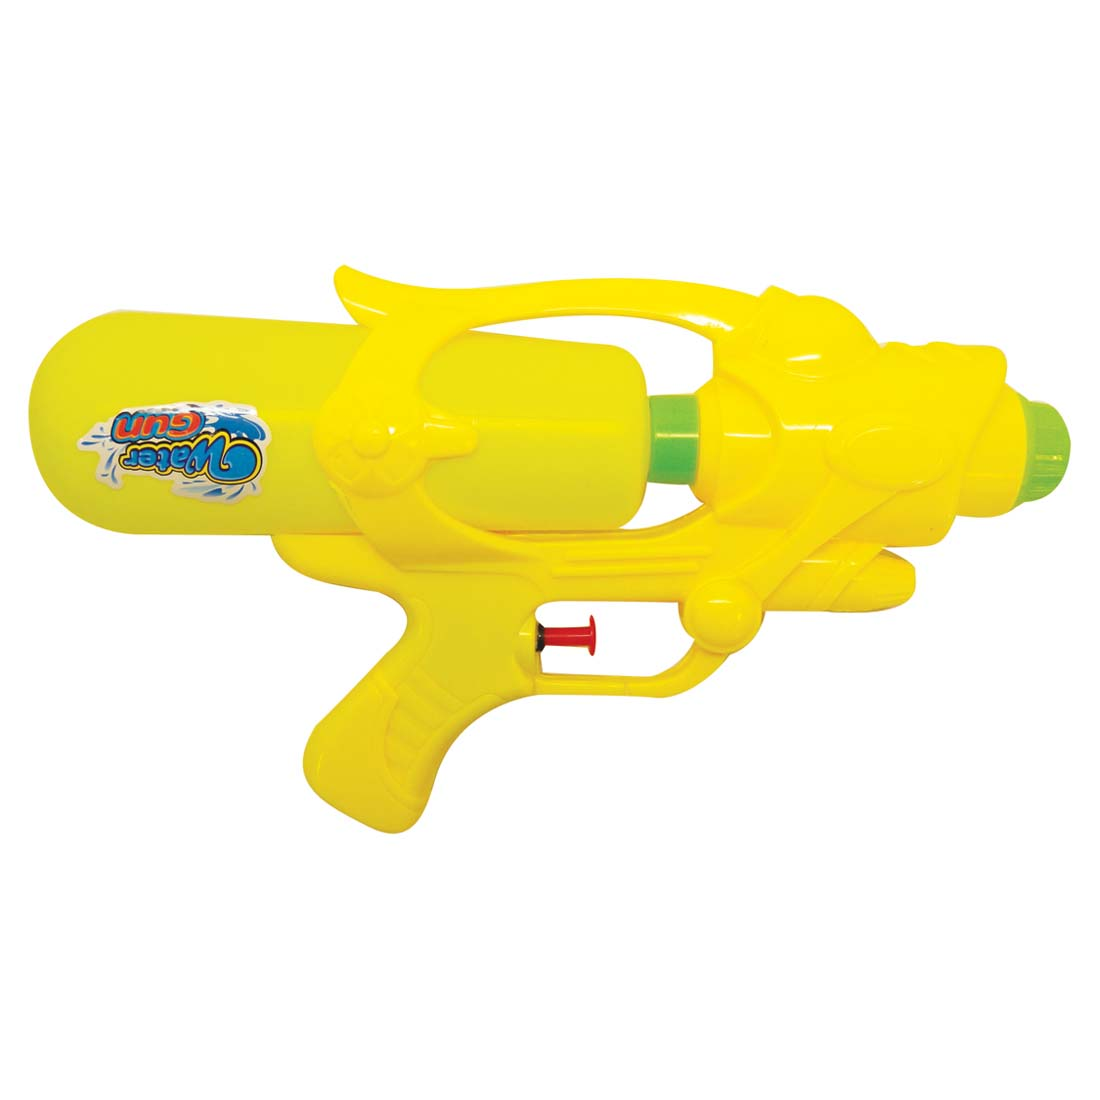 View WATER GUN 10.25 INCH ASSORTED COLORS